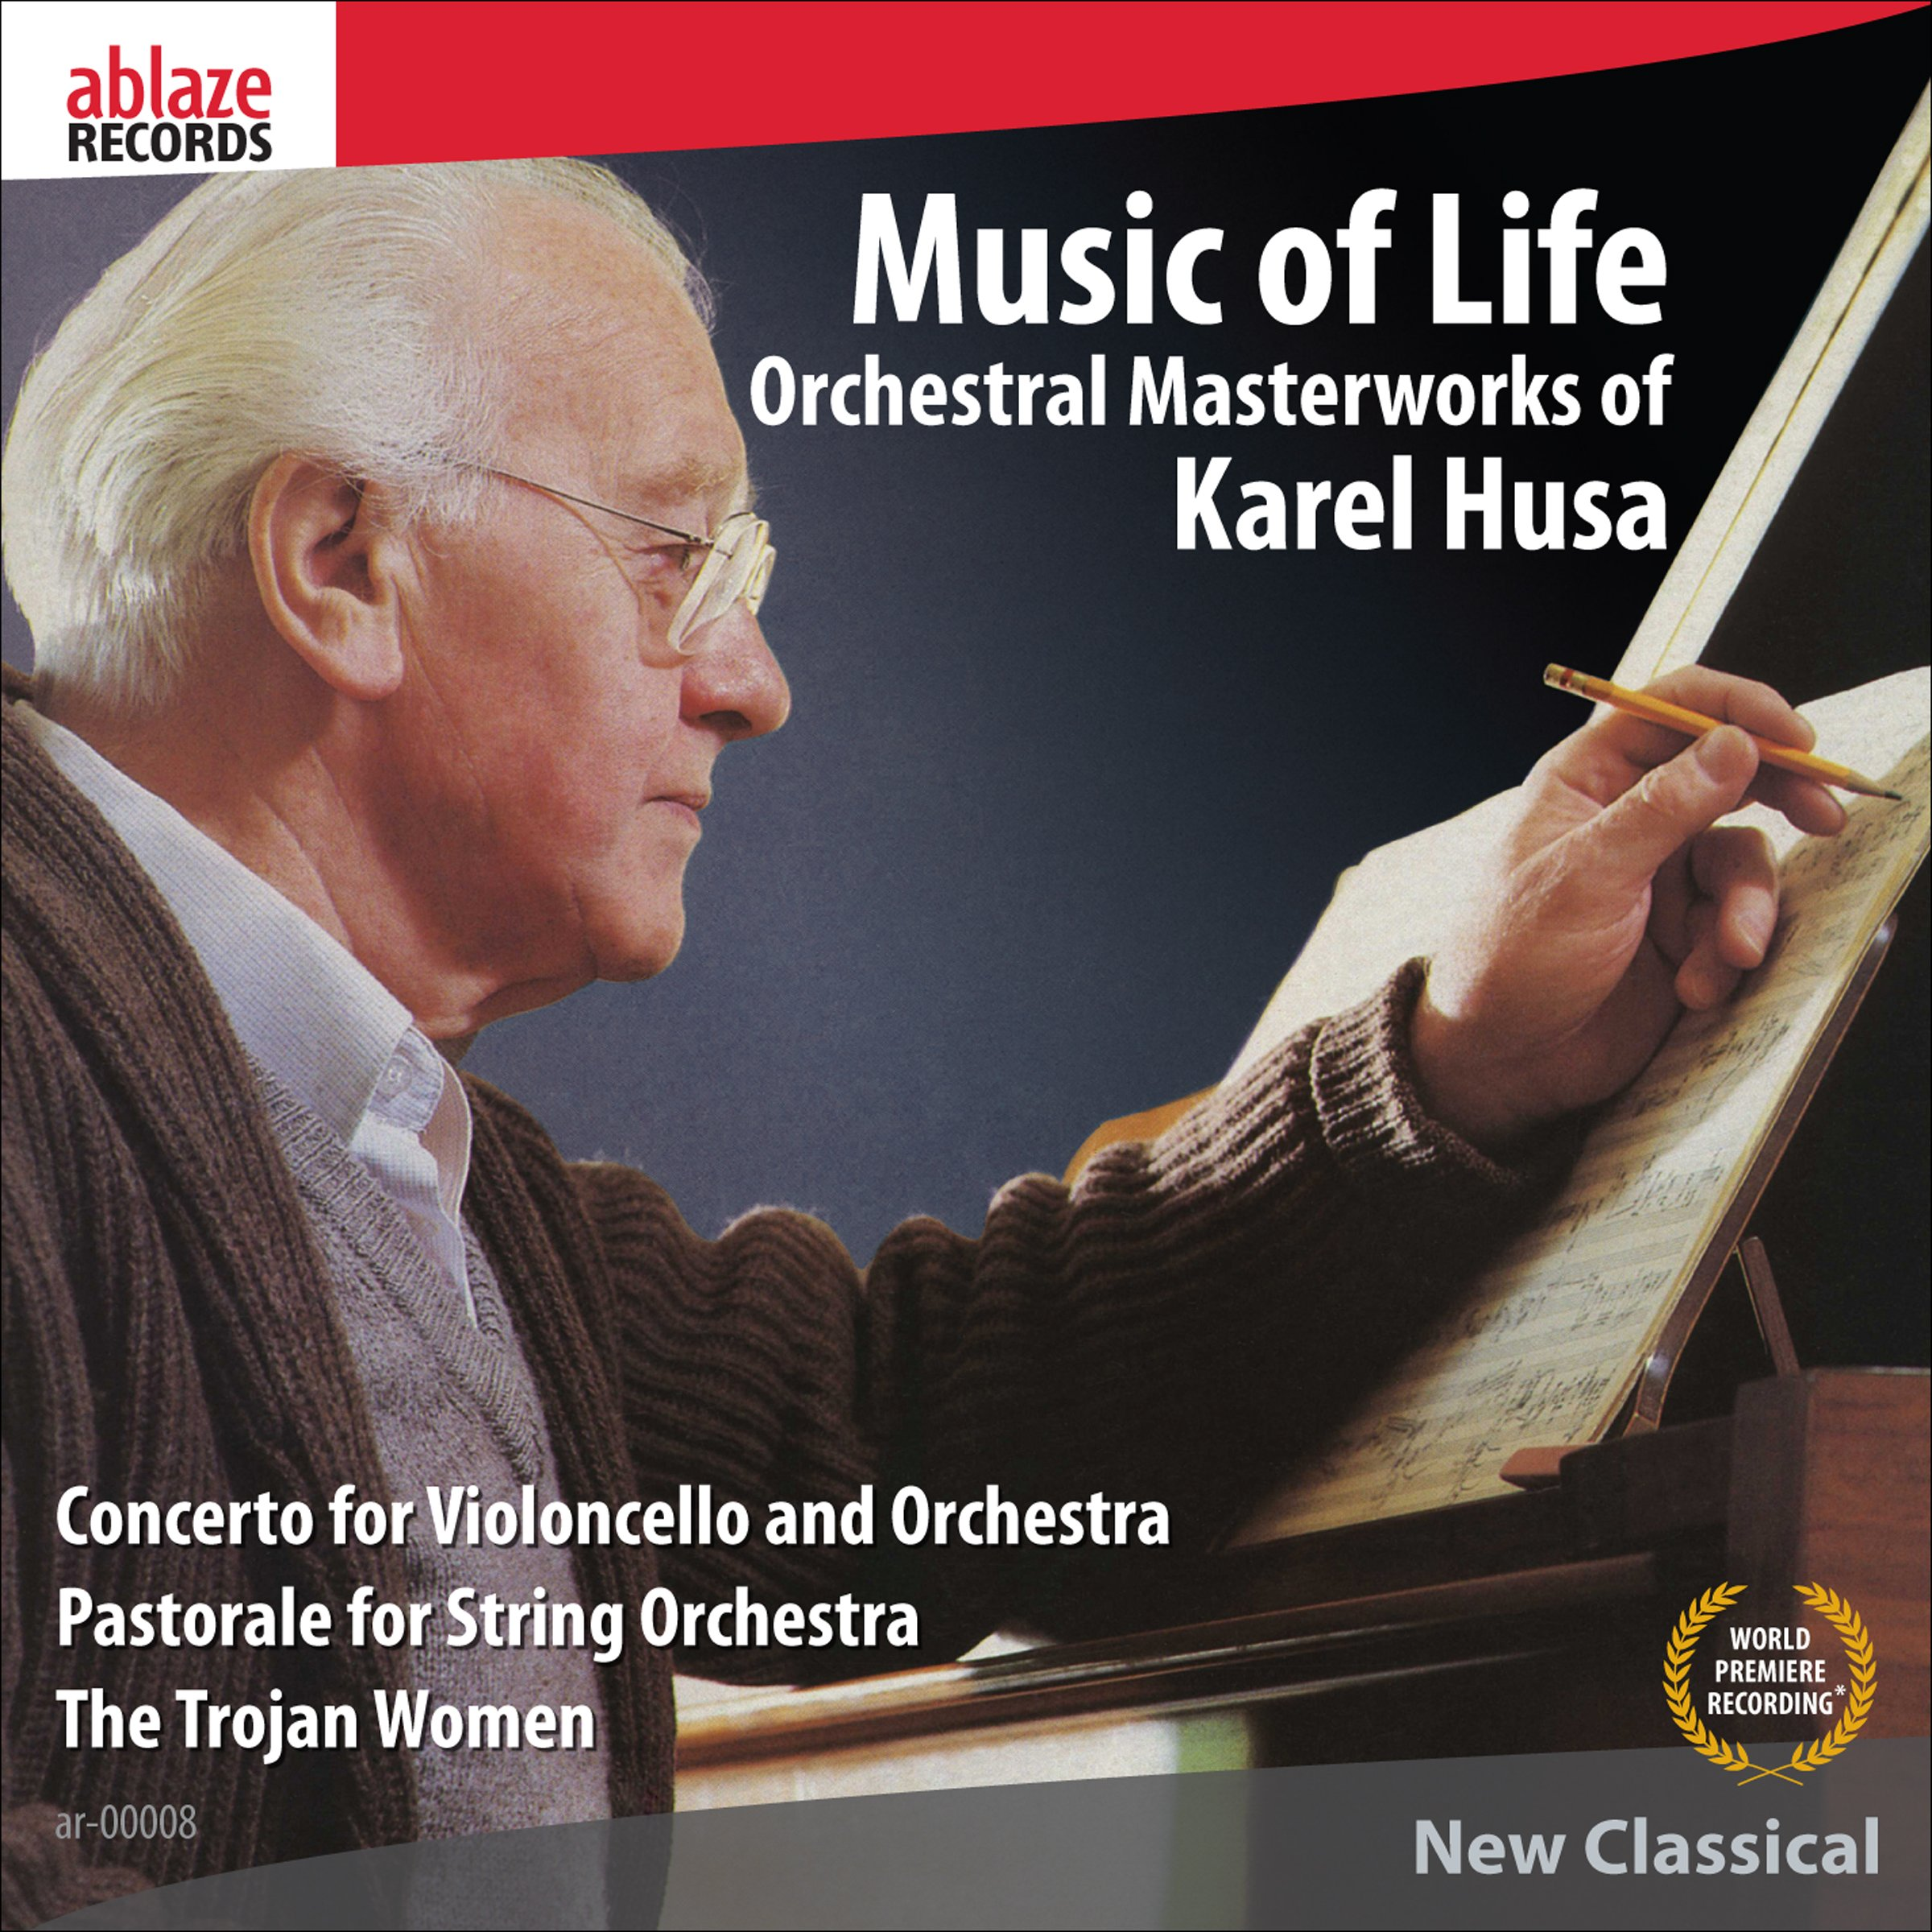 Music of Life–Orchestral Masterworks of Karel Husa by CD Baby